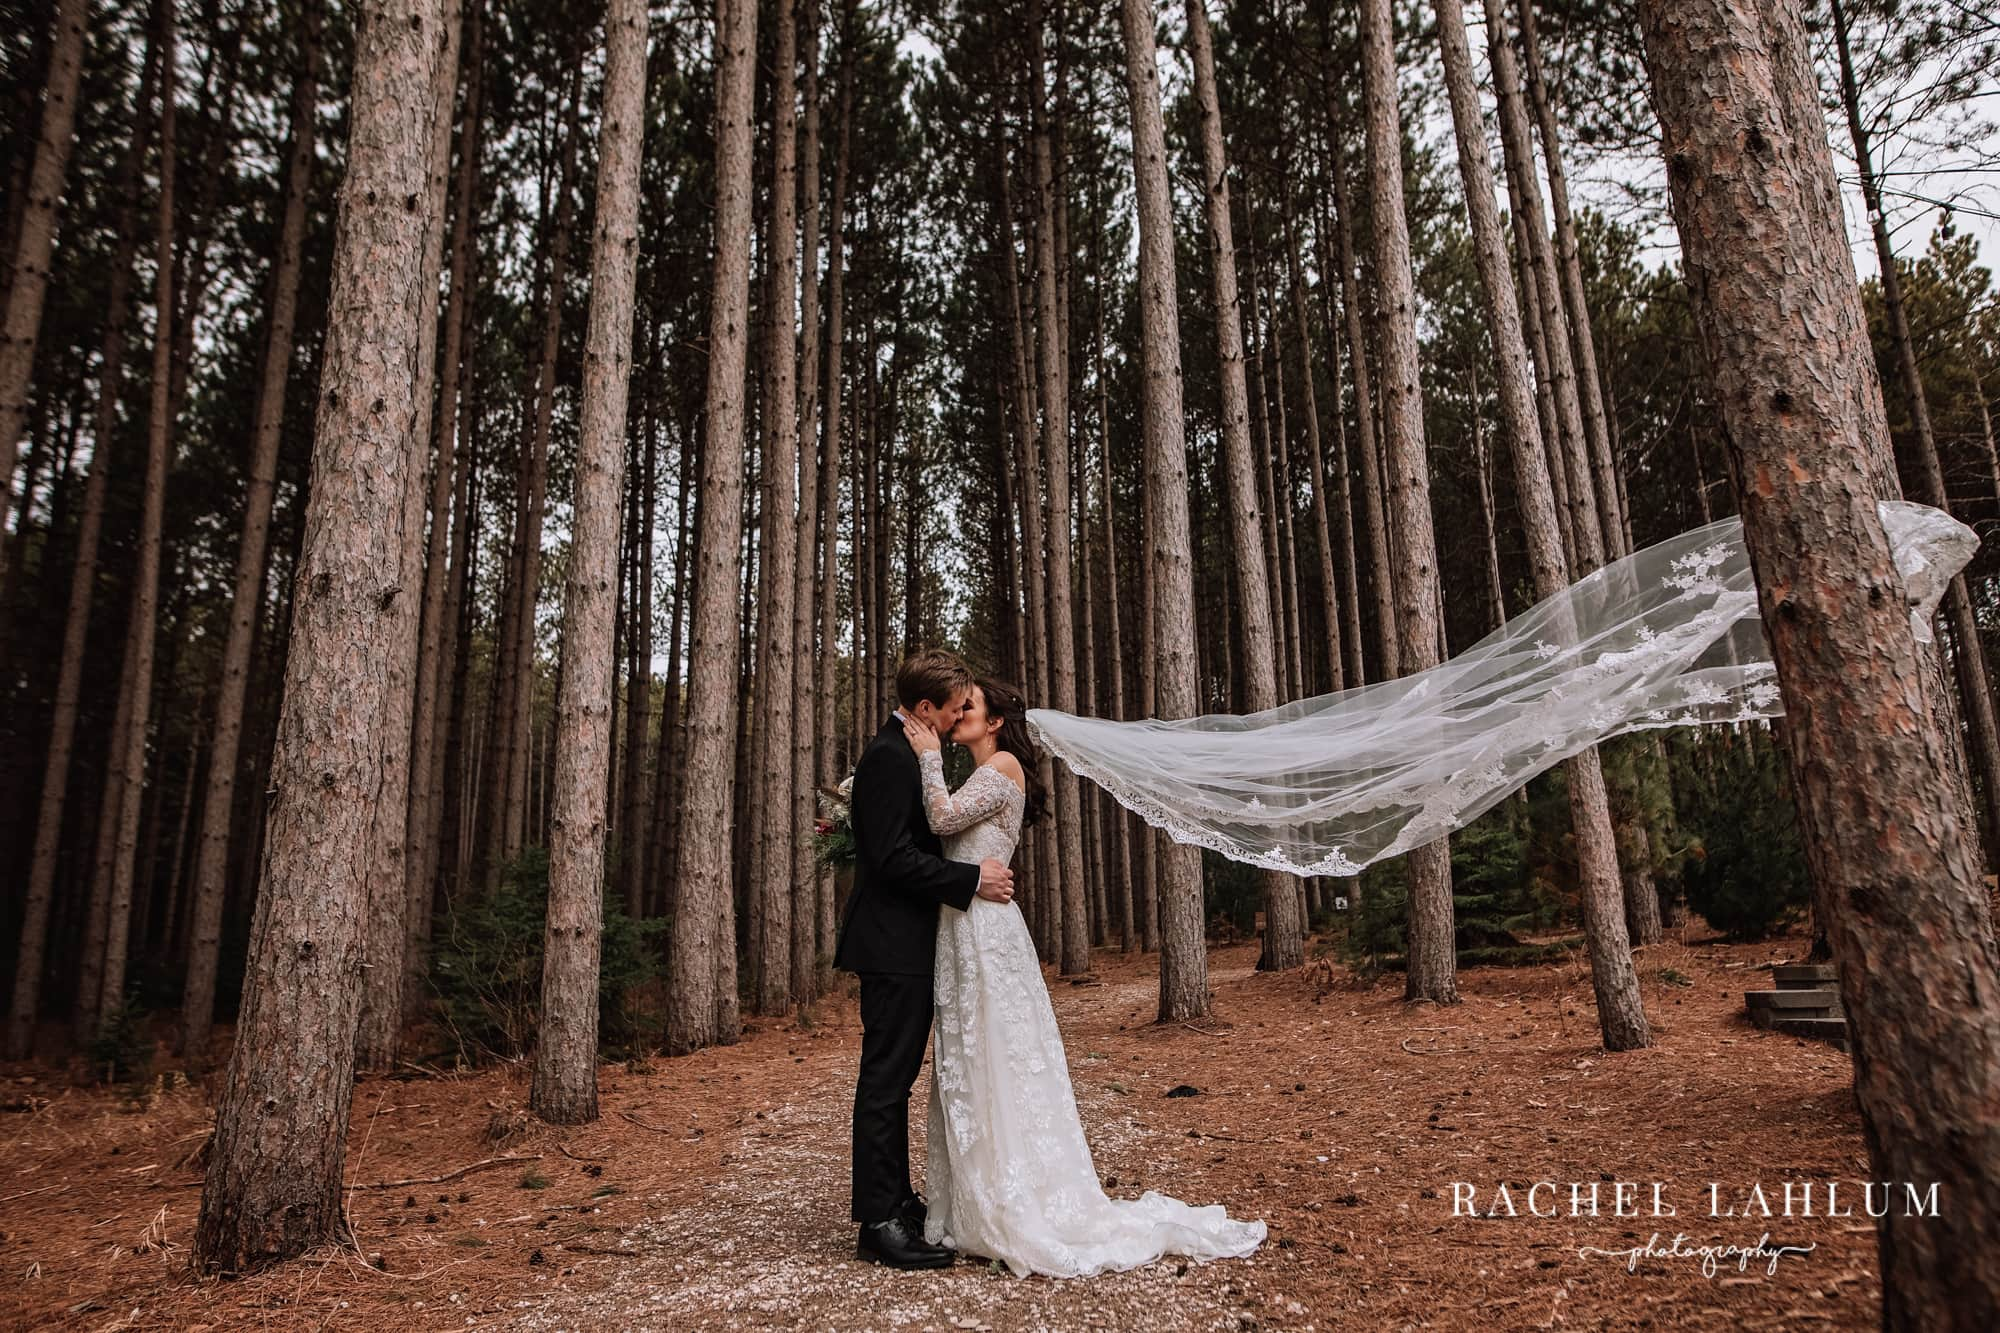 Bride and groom kiss in the woods after wedding at Pinewood Weddings and Events in Cambridge, Minnesota.